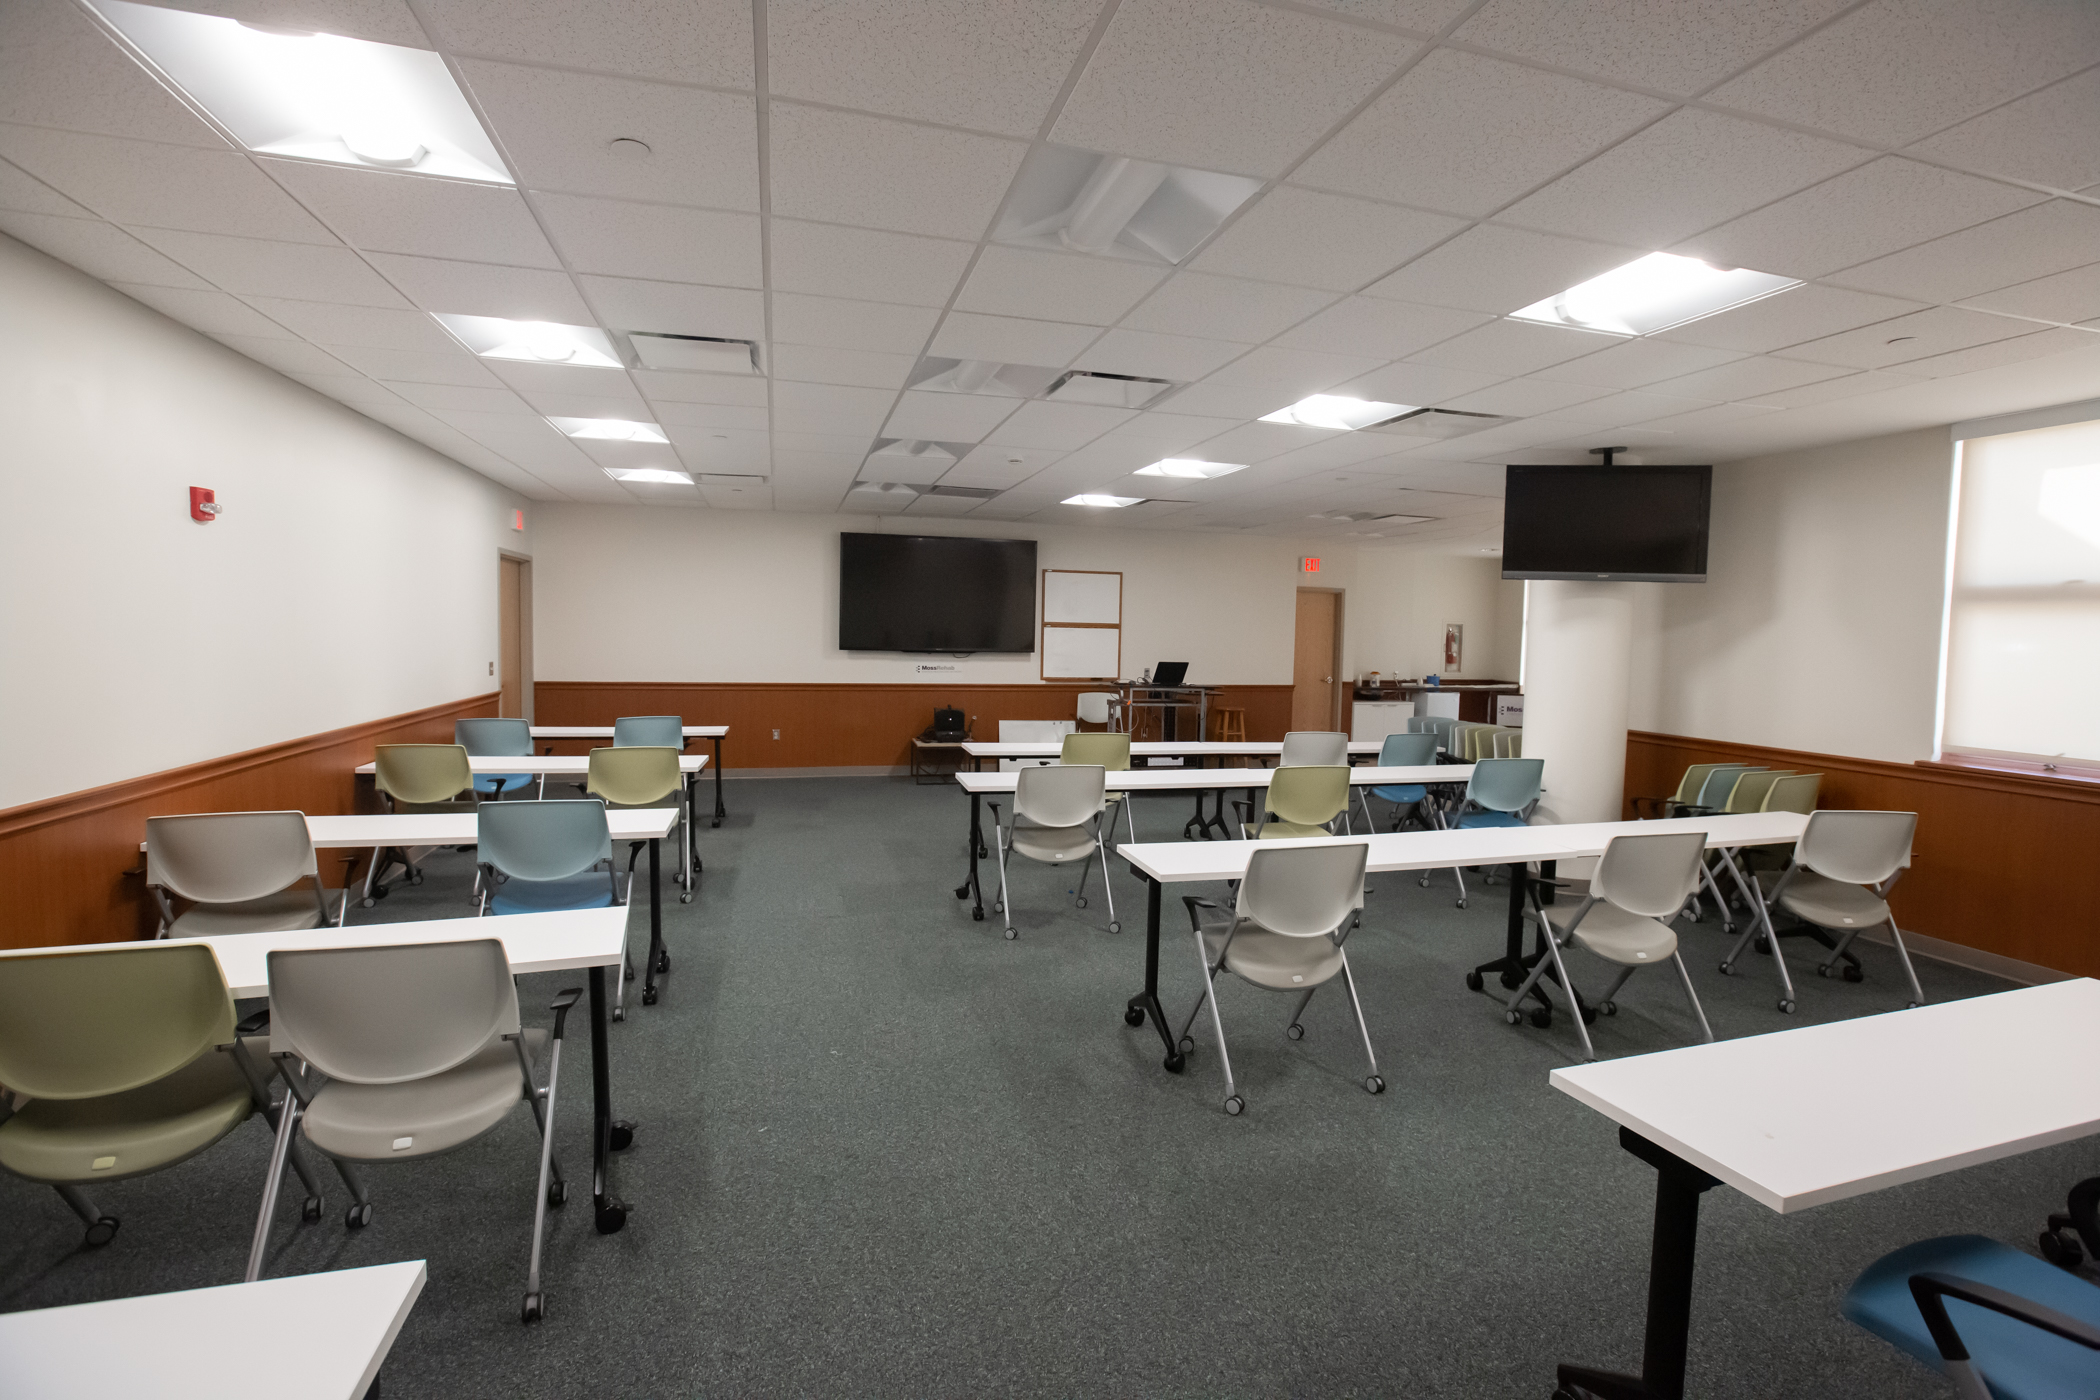 image of a conference room